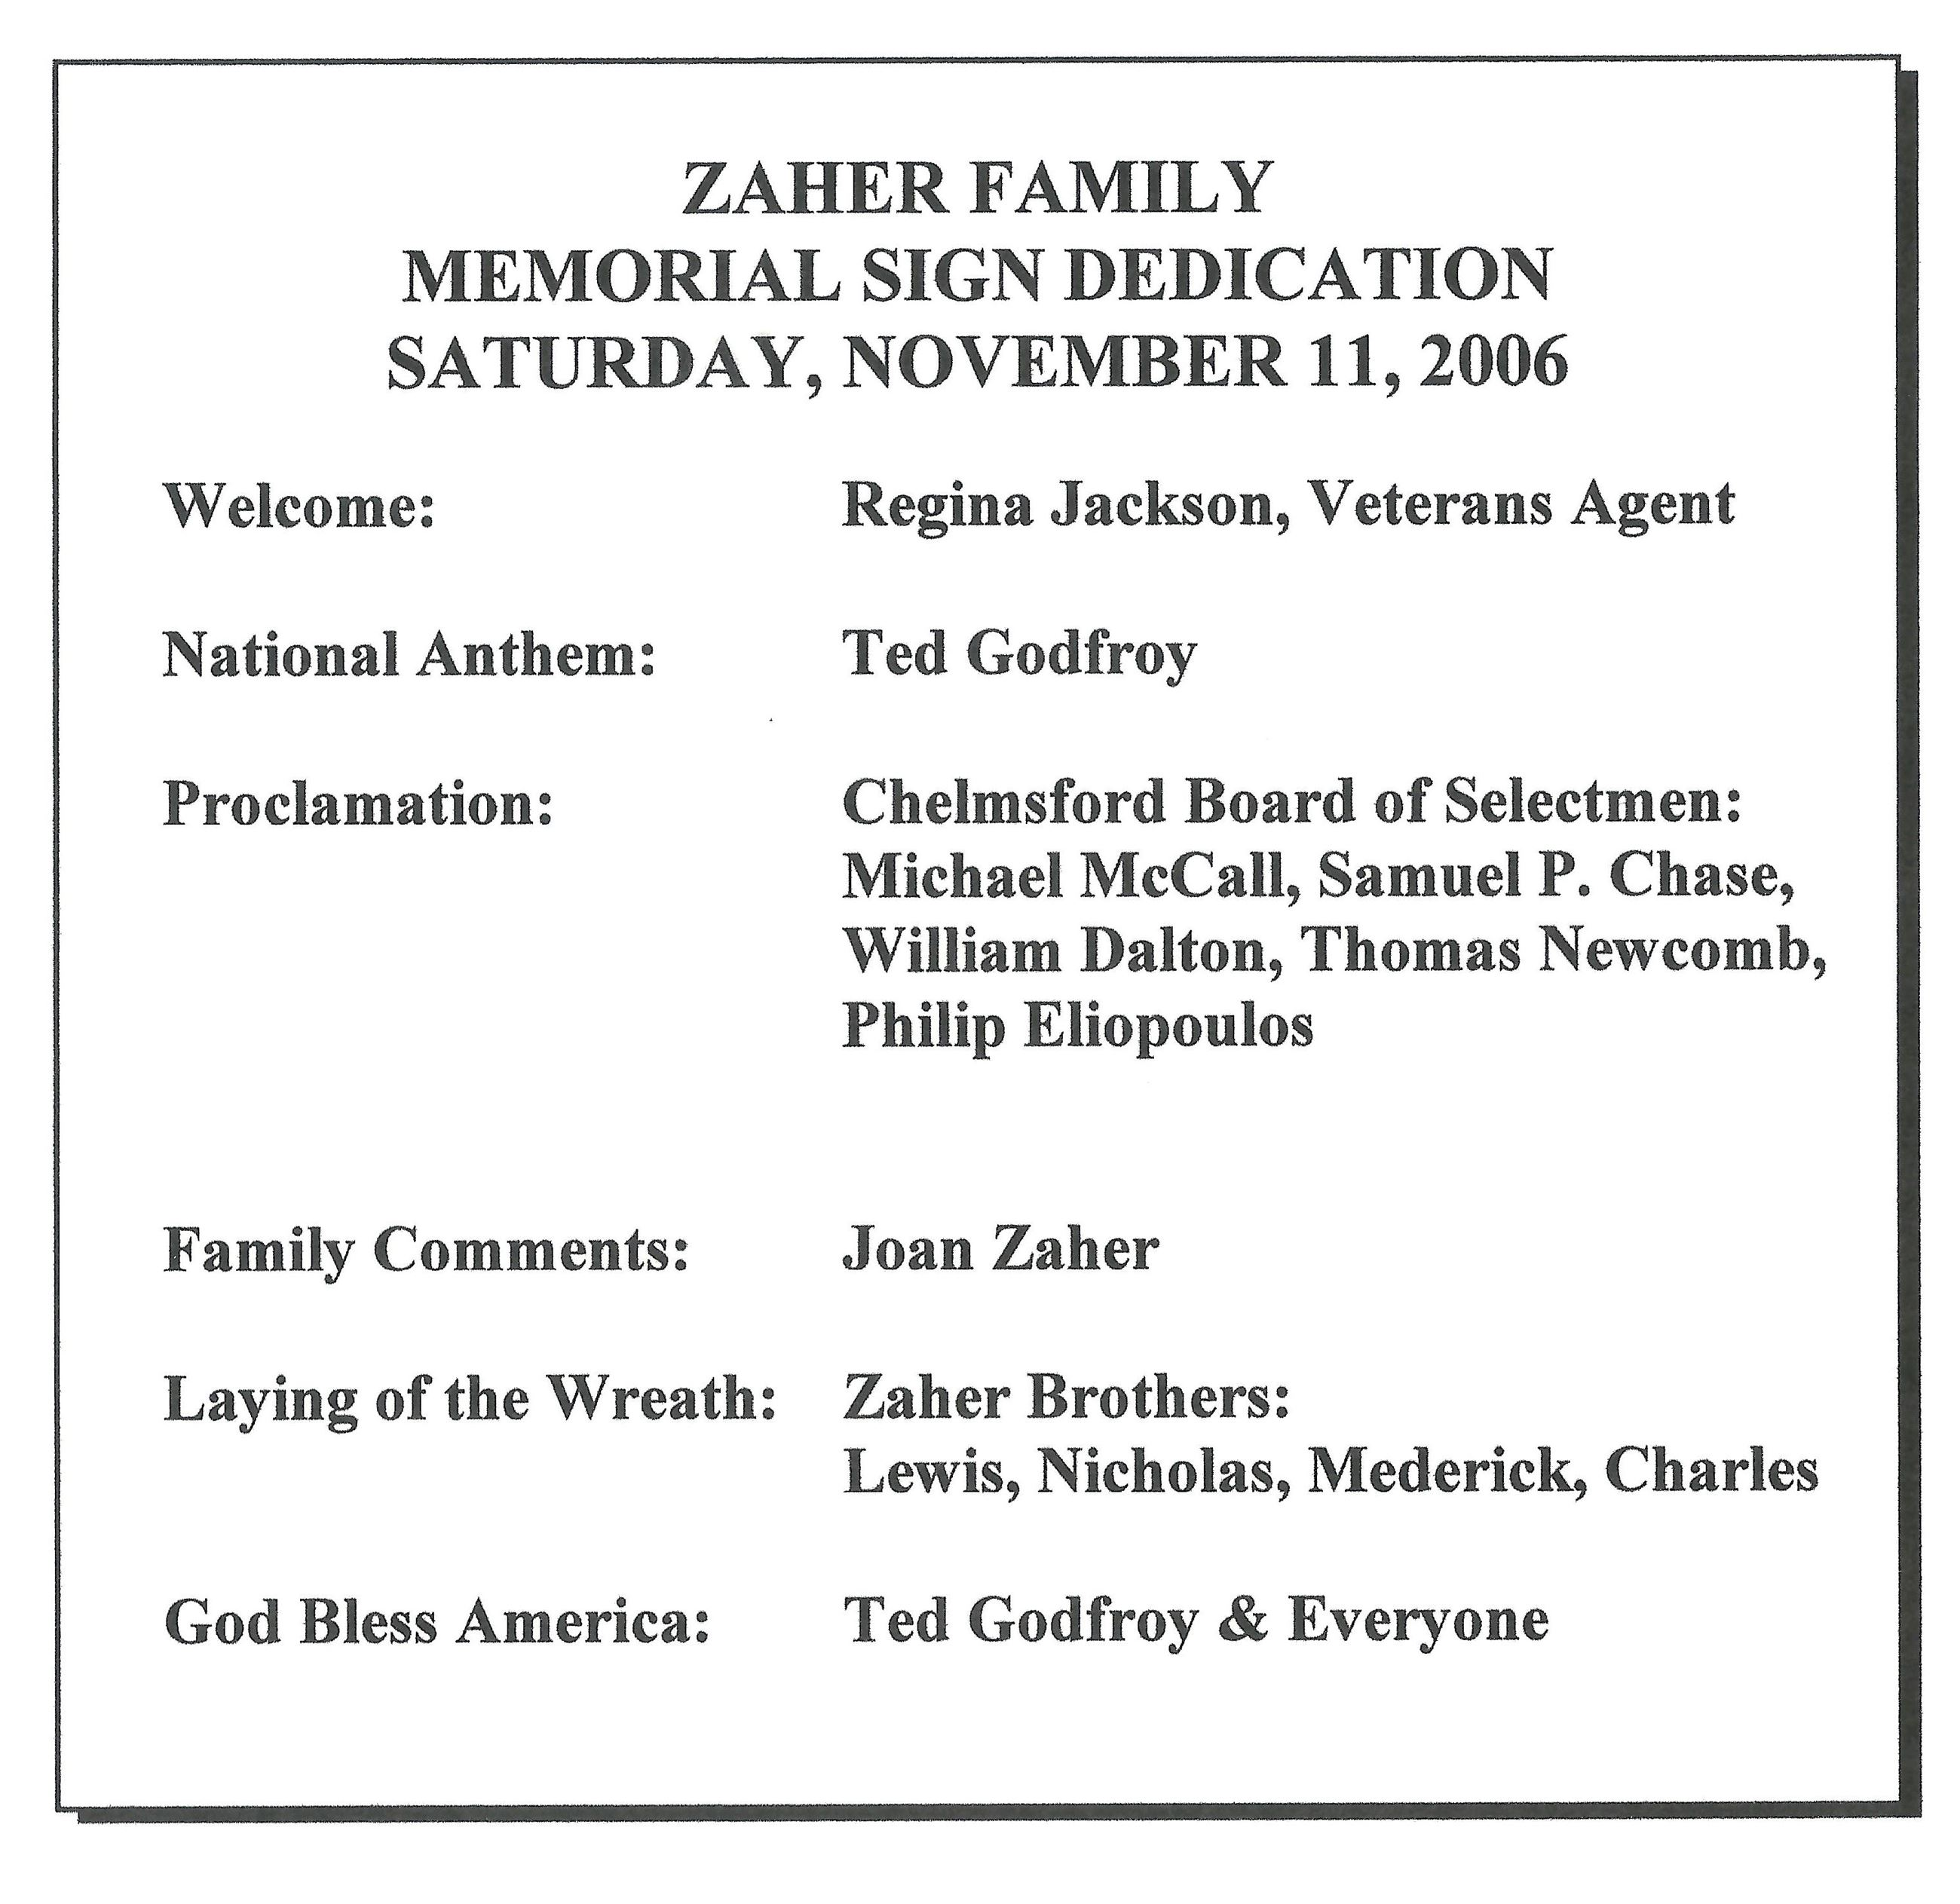 Zaher Family - Memorial Sign Dedication